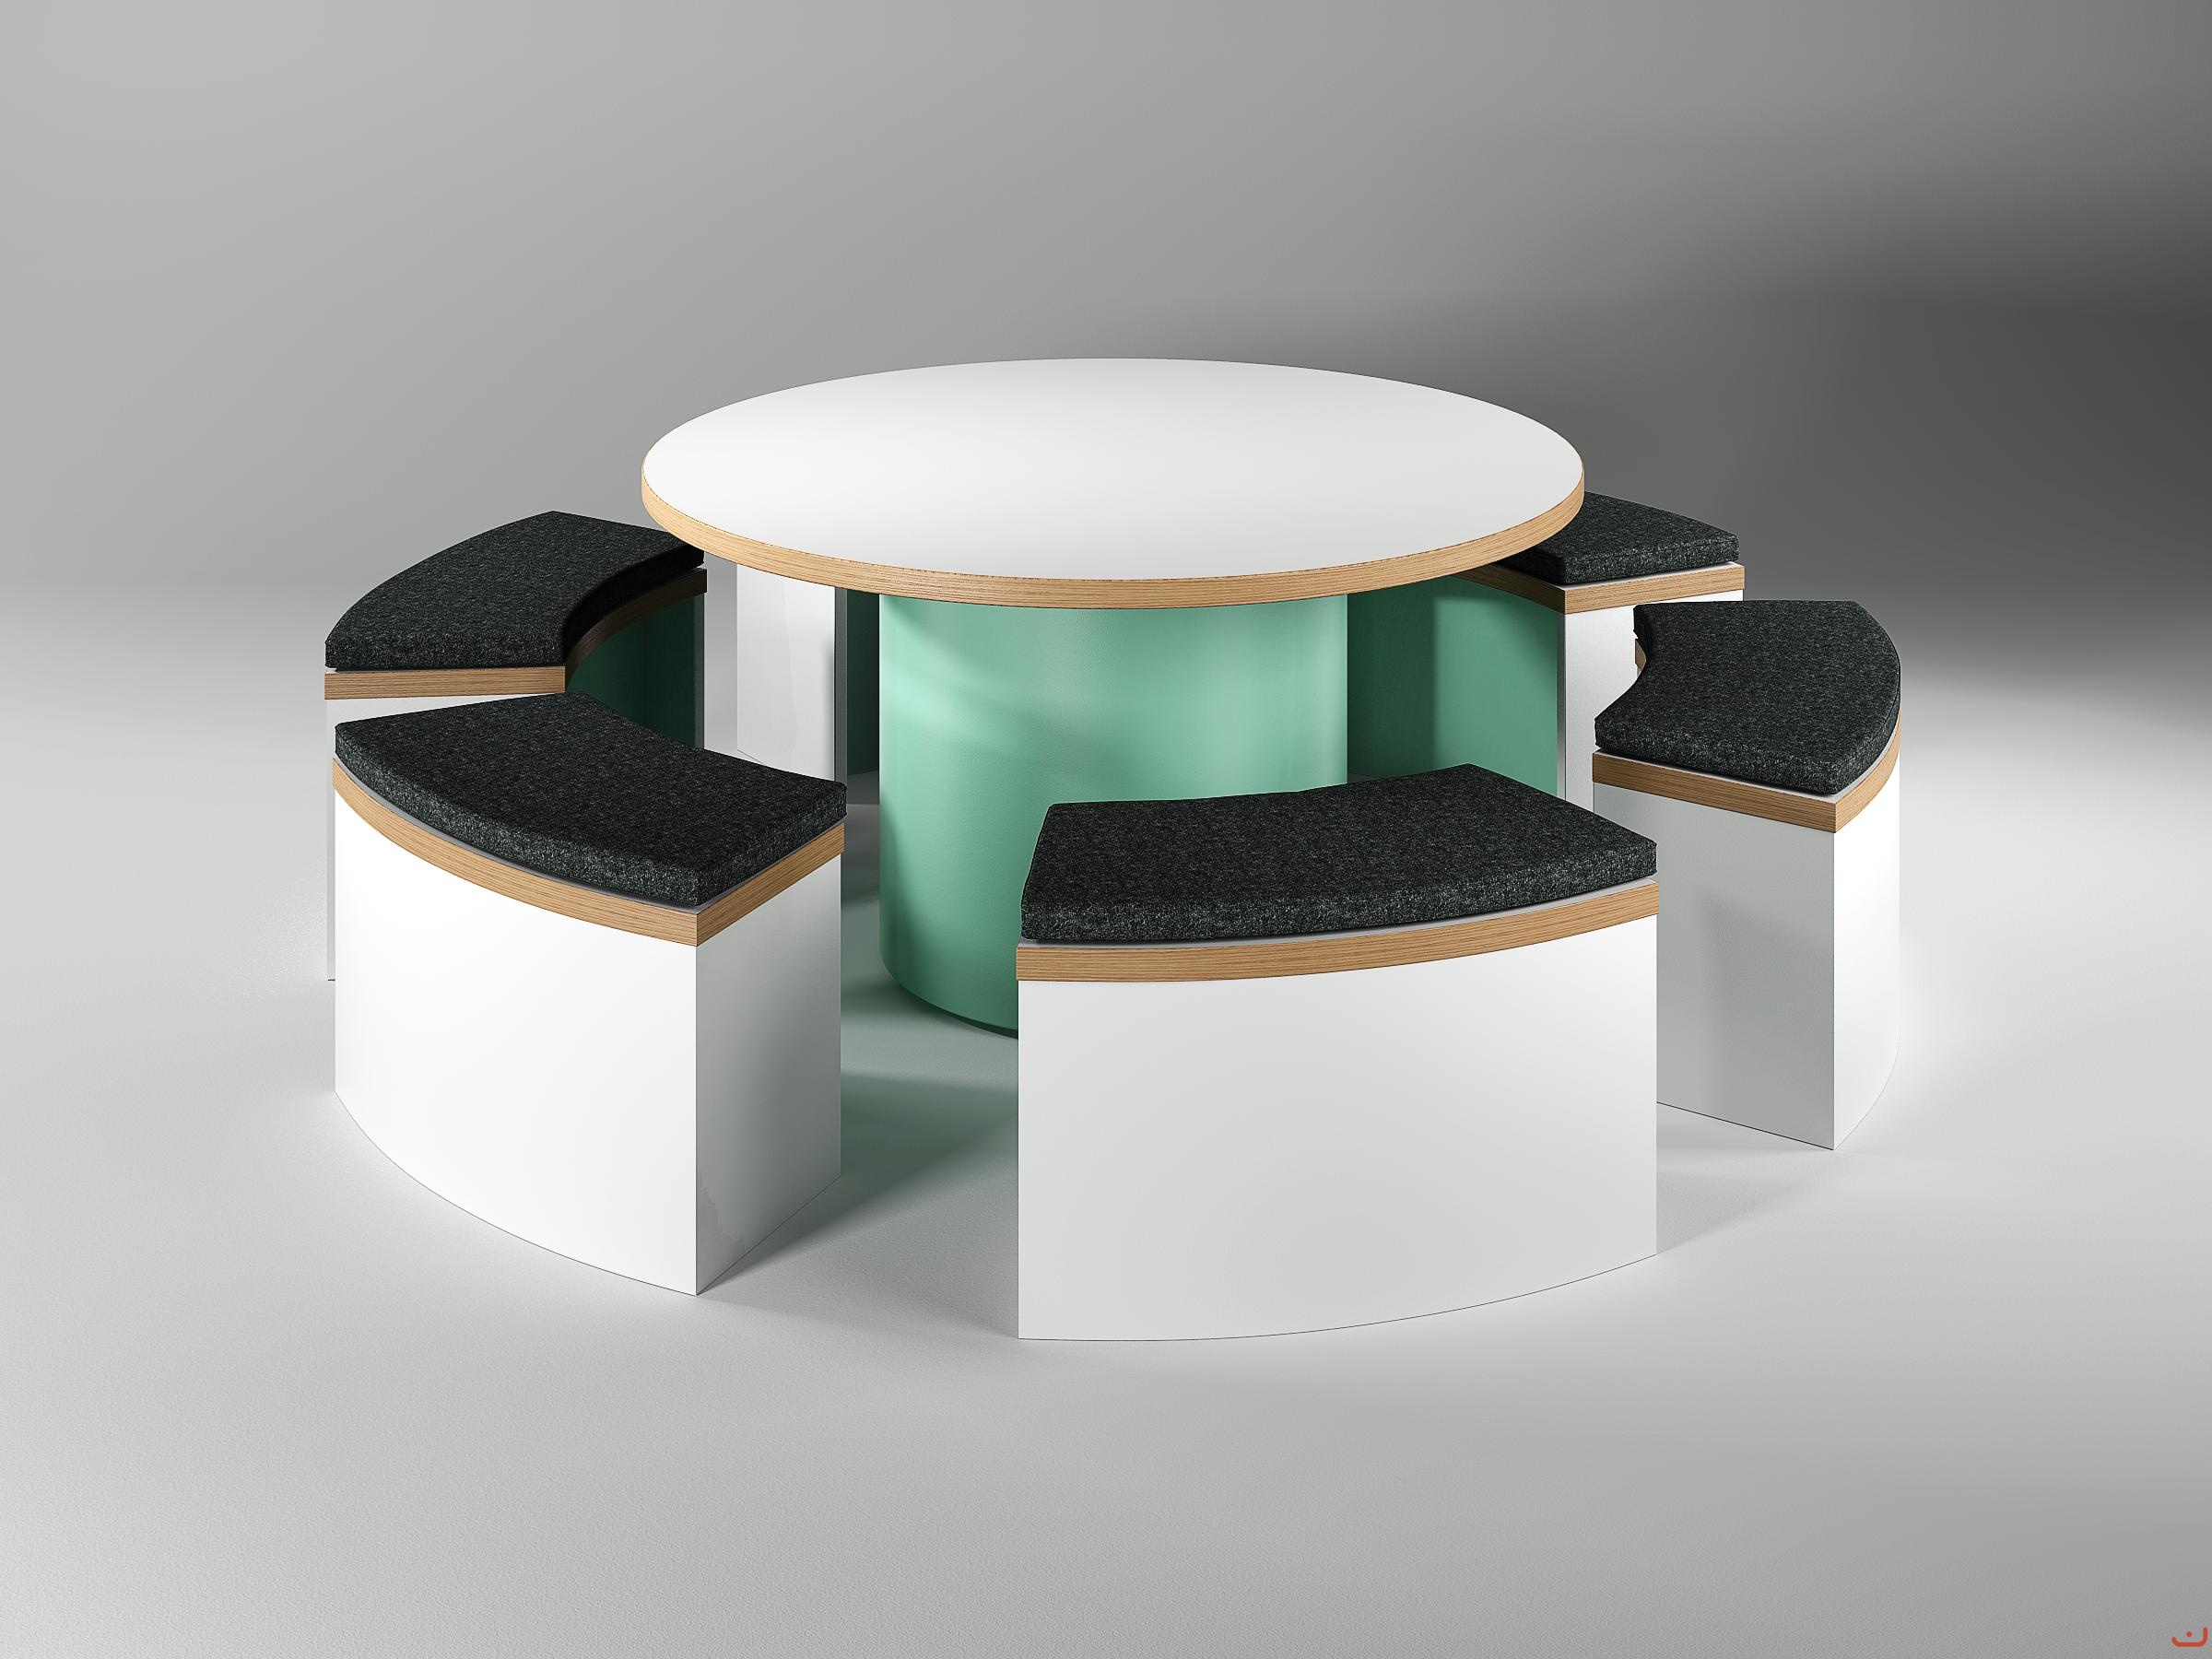 Jive-Canteen-Furniture-Circular-Tables-and-Benching-with-Upholstered-Seat-Pads